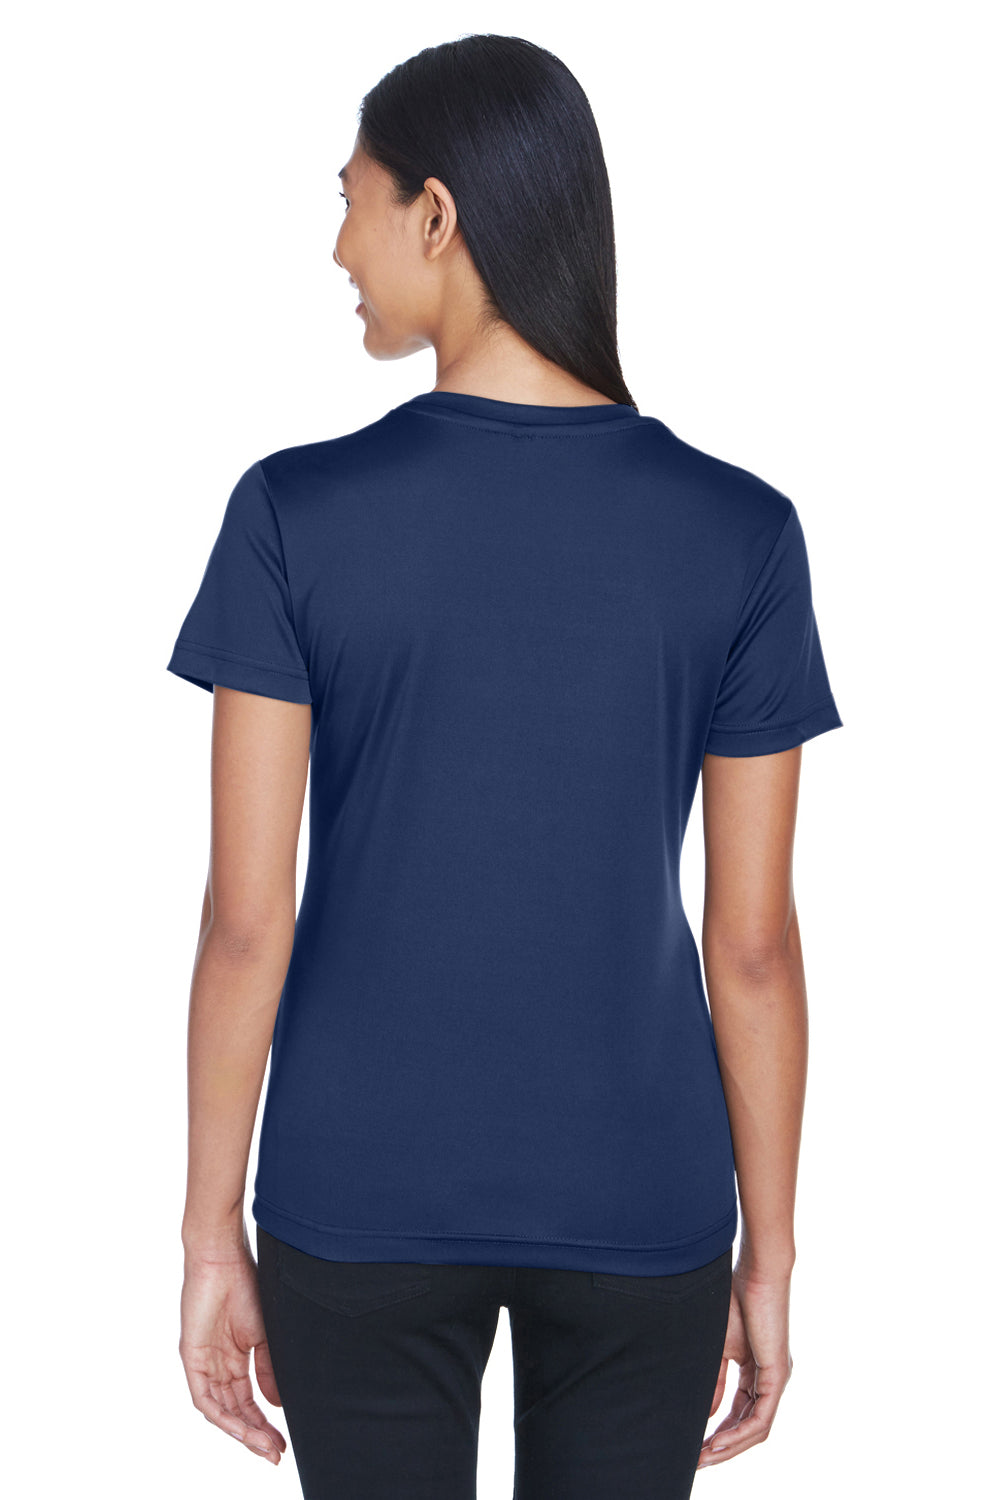 UltraClub 8620L Womens Cool & Dry Performance Moisture Wicking Short Sleeve Crewneck T-Shirt Navy Blue Back